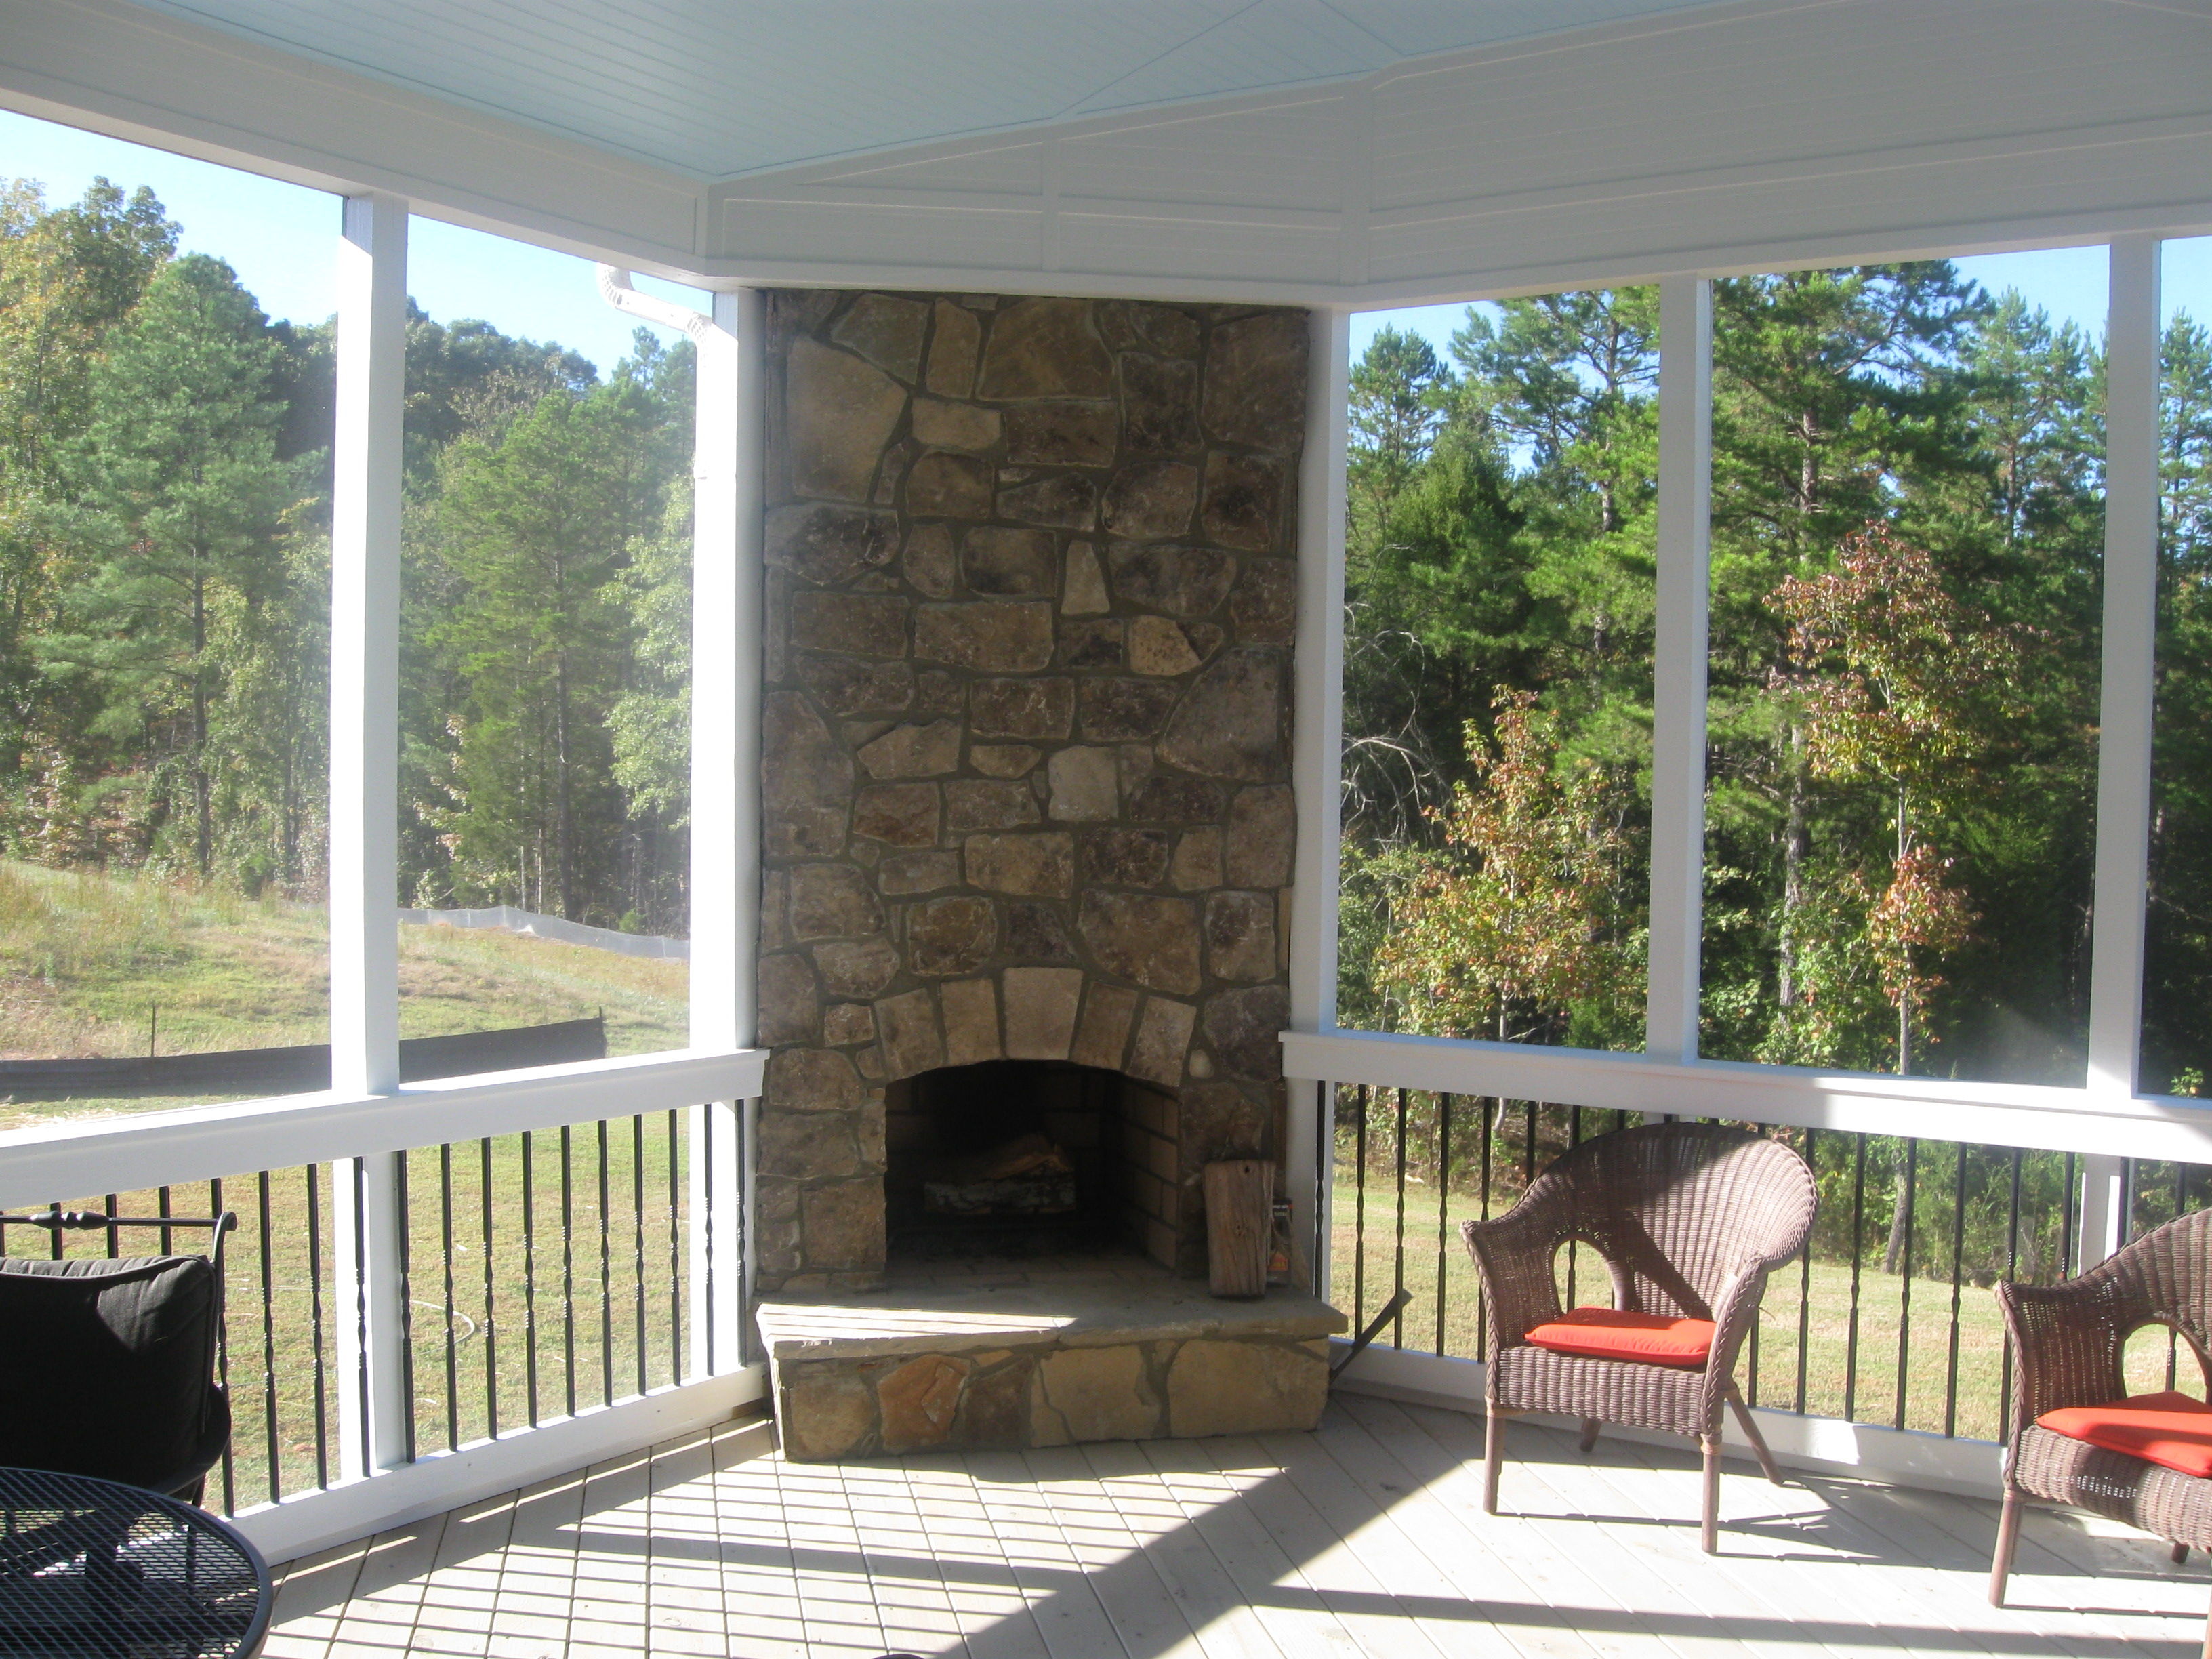 burning how to patio into wood putting stone porch your fireplace a with covered in screen outdoor integrated